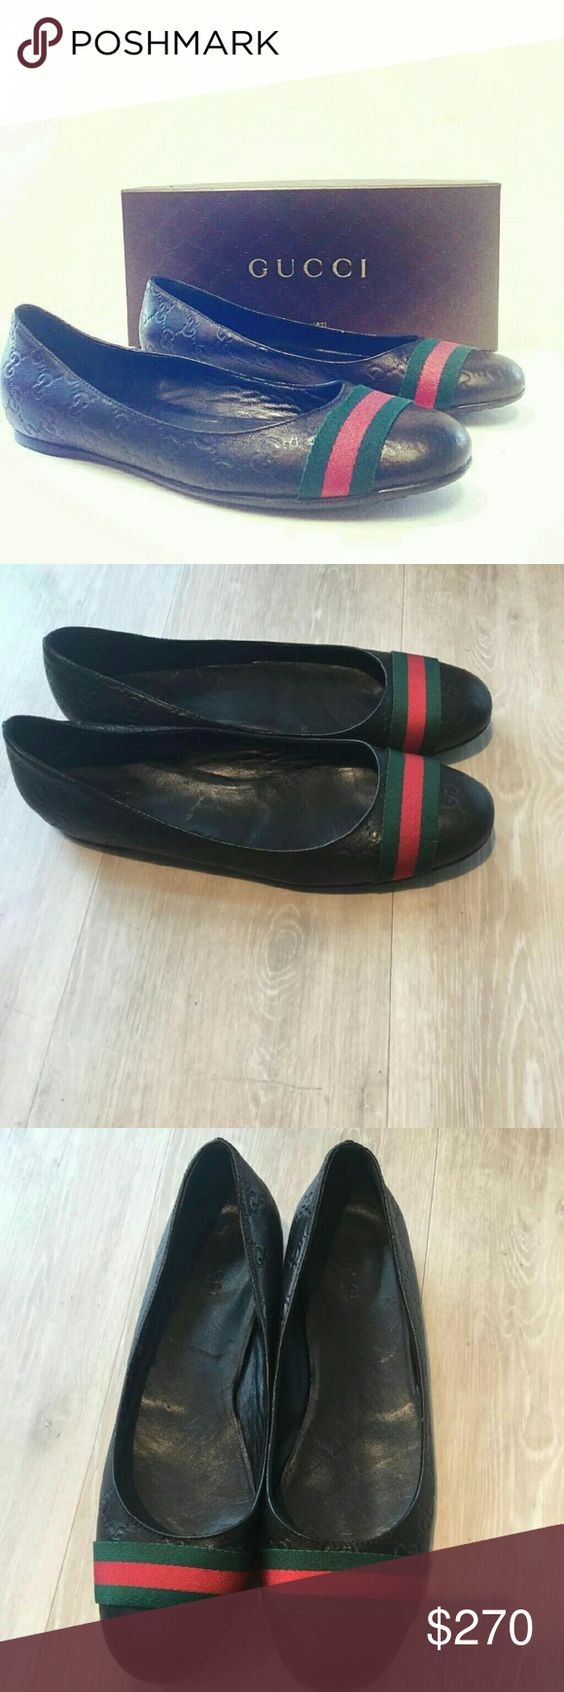 Gucci women's flats Very very good condition.  Gucci women's flats. Yes, they are authentic. Guccissimaleather with nylon green and red stripe. Gucci Shoes Flats & Loafers